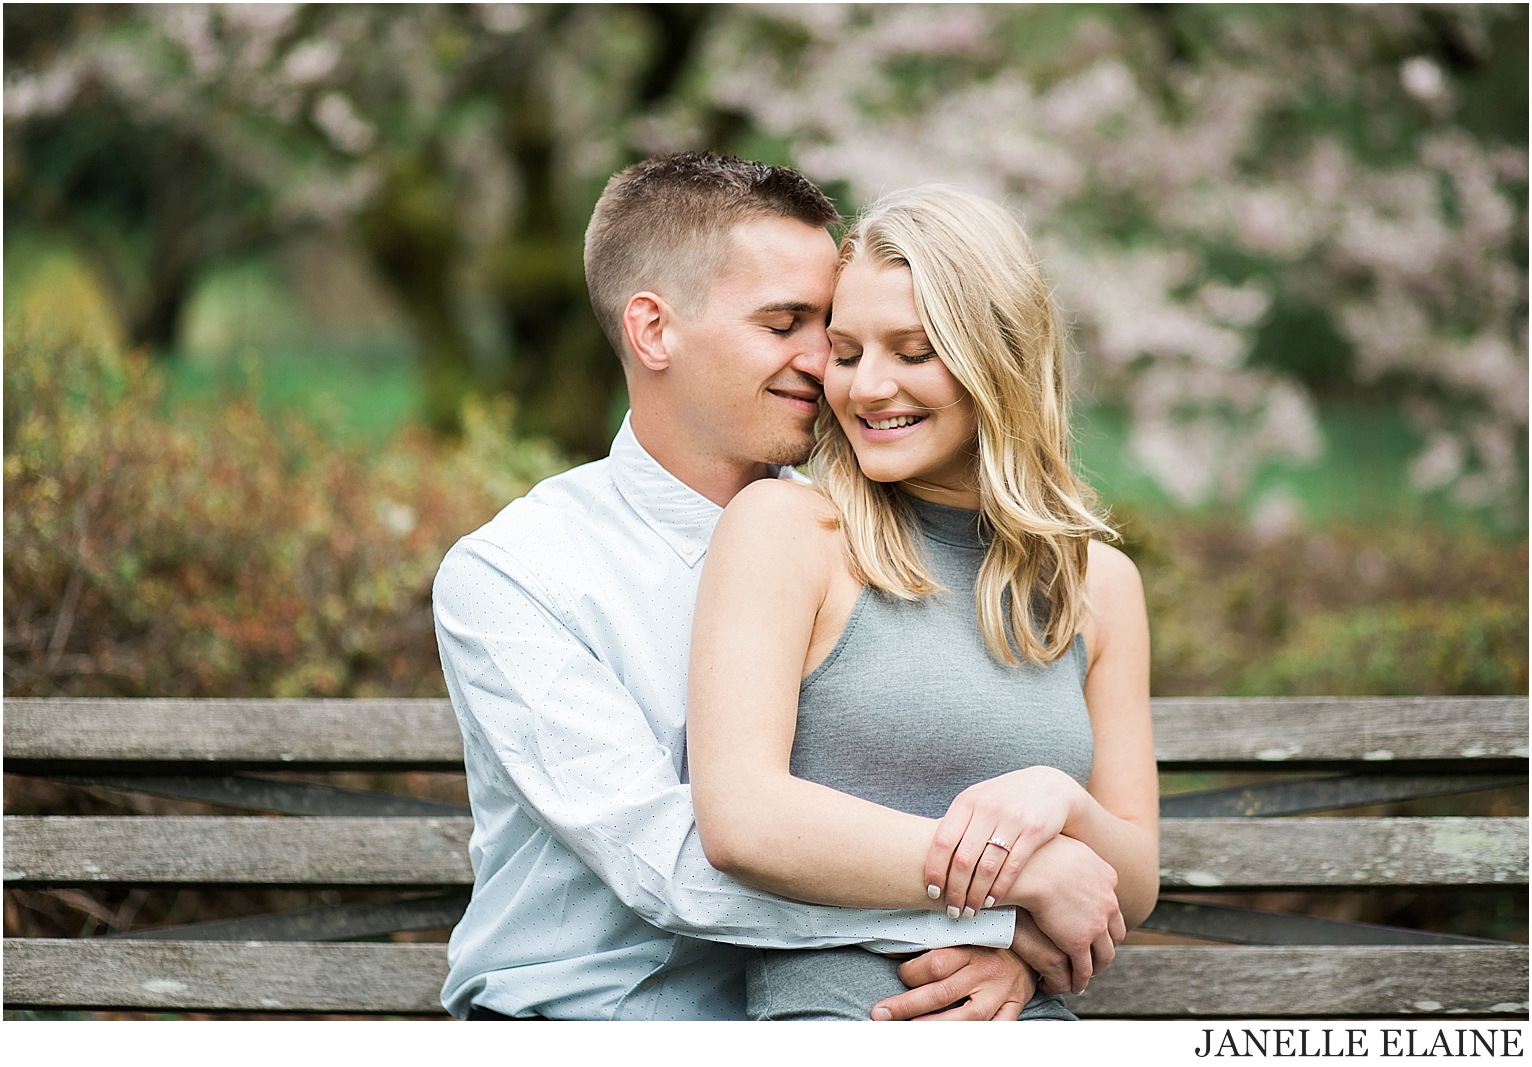 tricia and nate engagement photos-janelle elaine photography-7.jpg